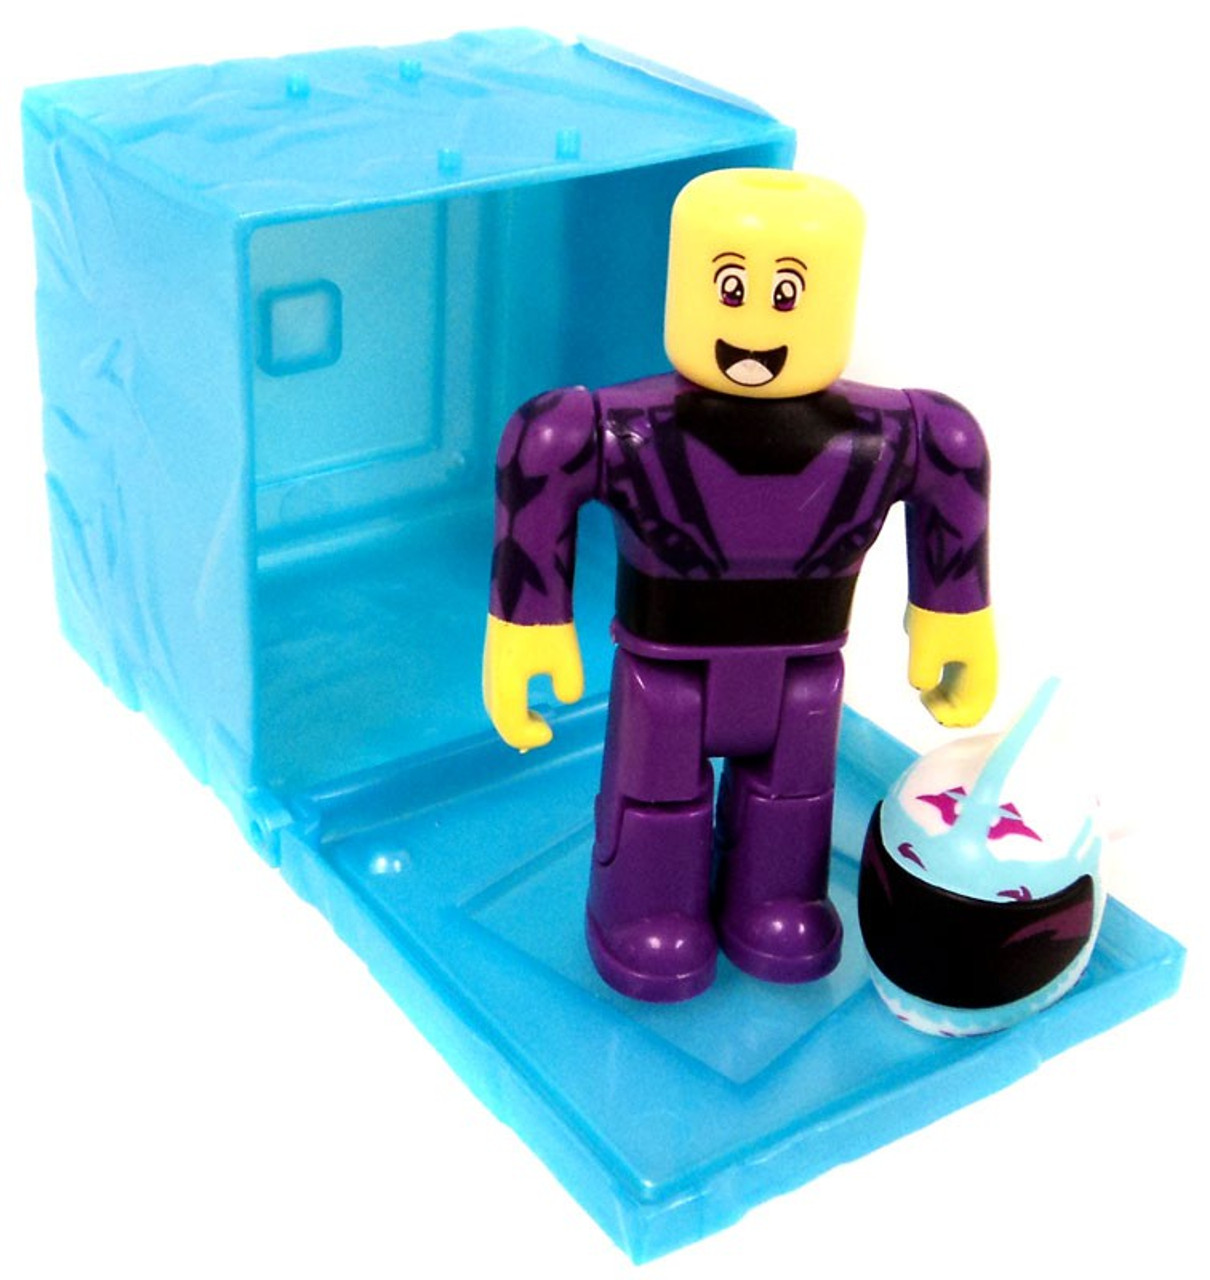 Roblox Series 3 Patient Zero Mini Figure Without Code No Packaging - Roblox Red Series 3 Westover Racer Mini Figure Blue Cube